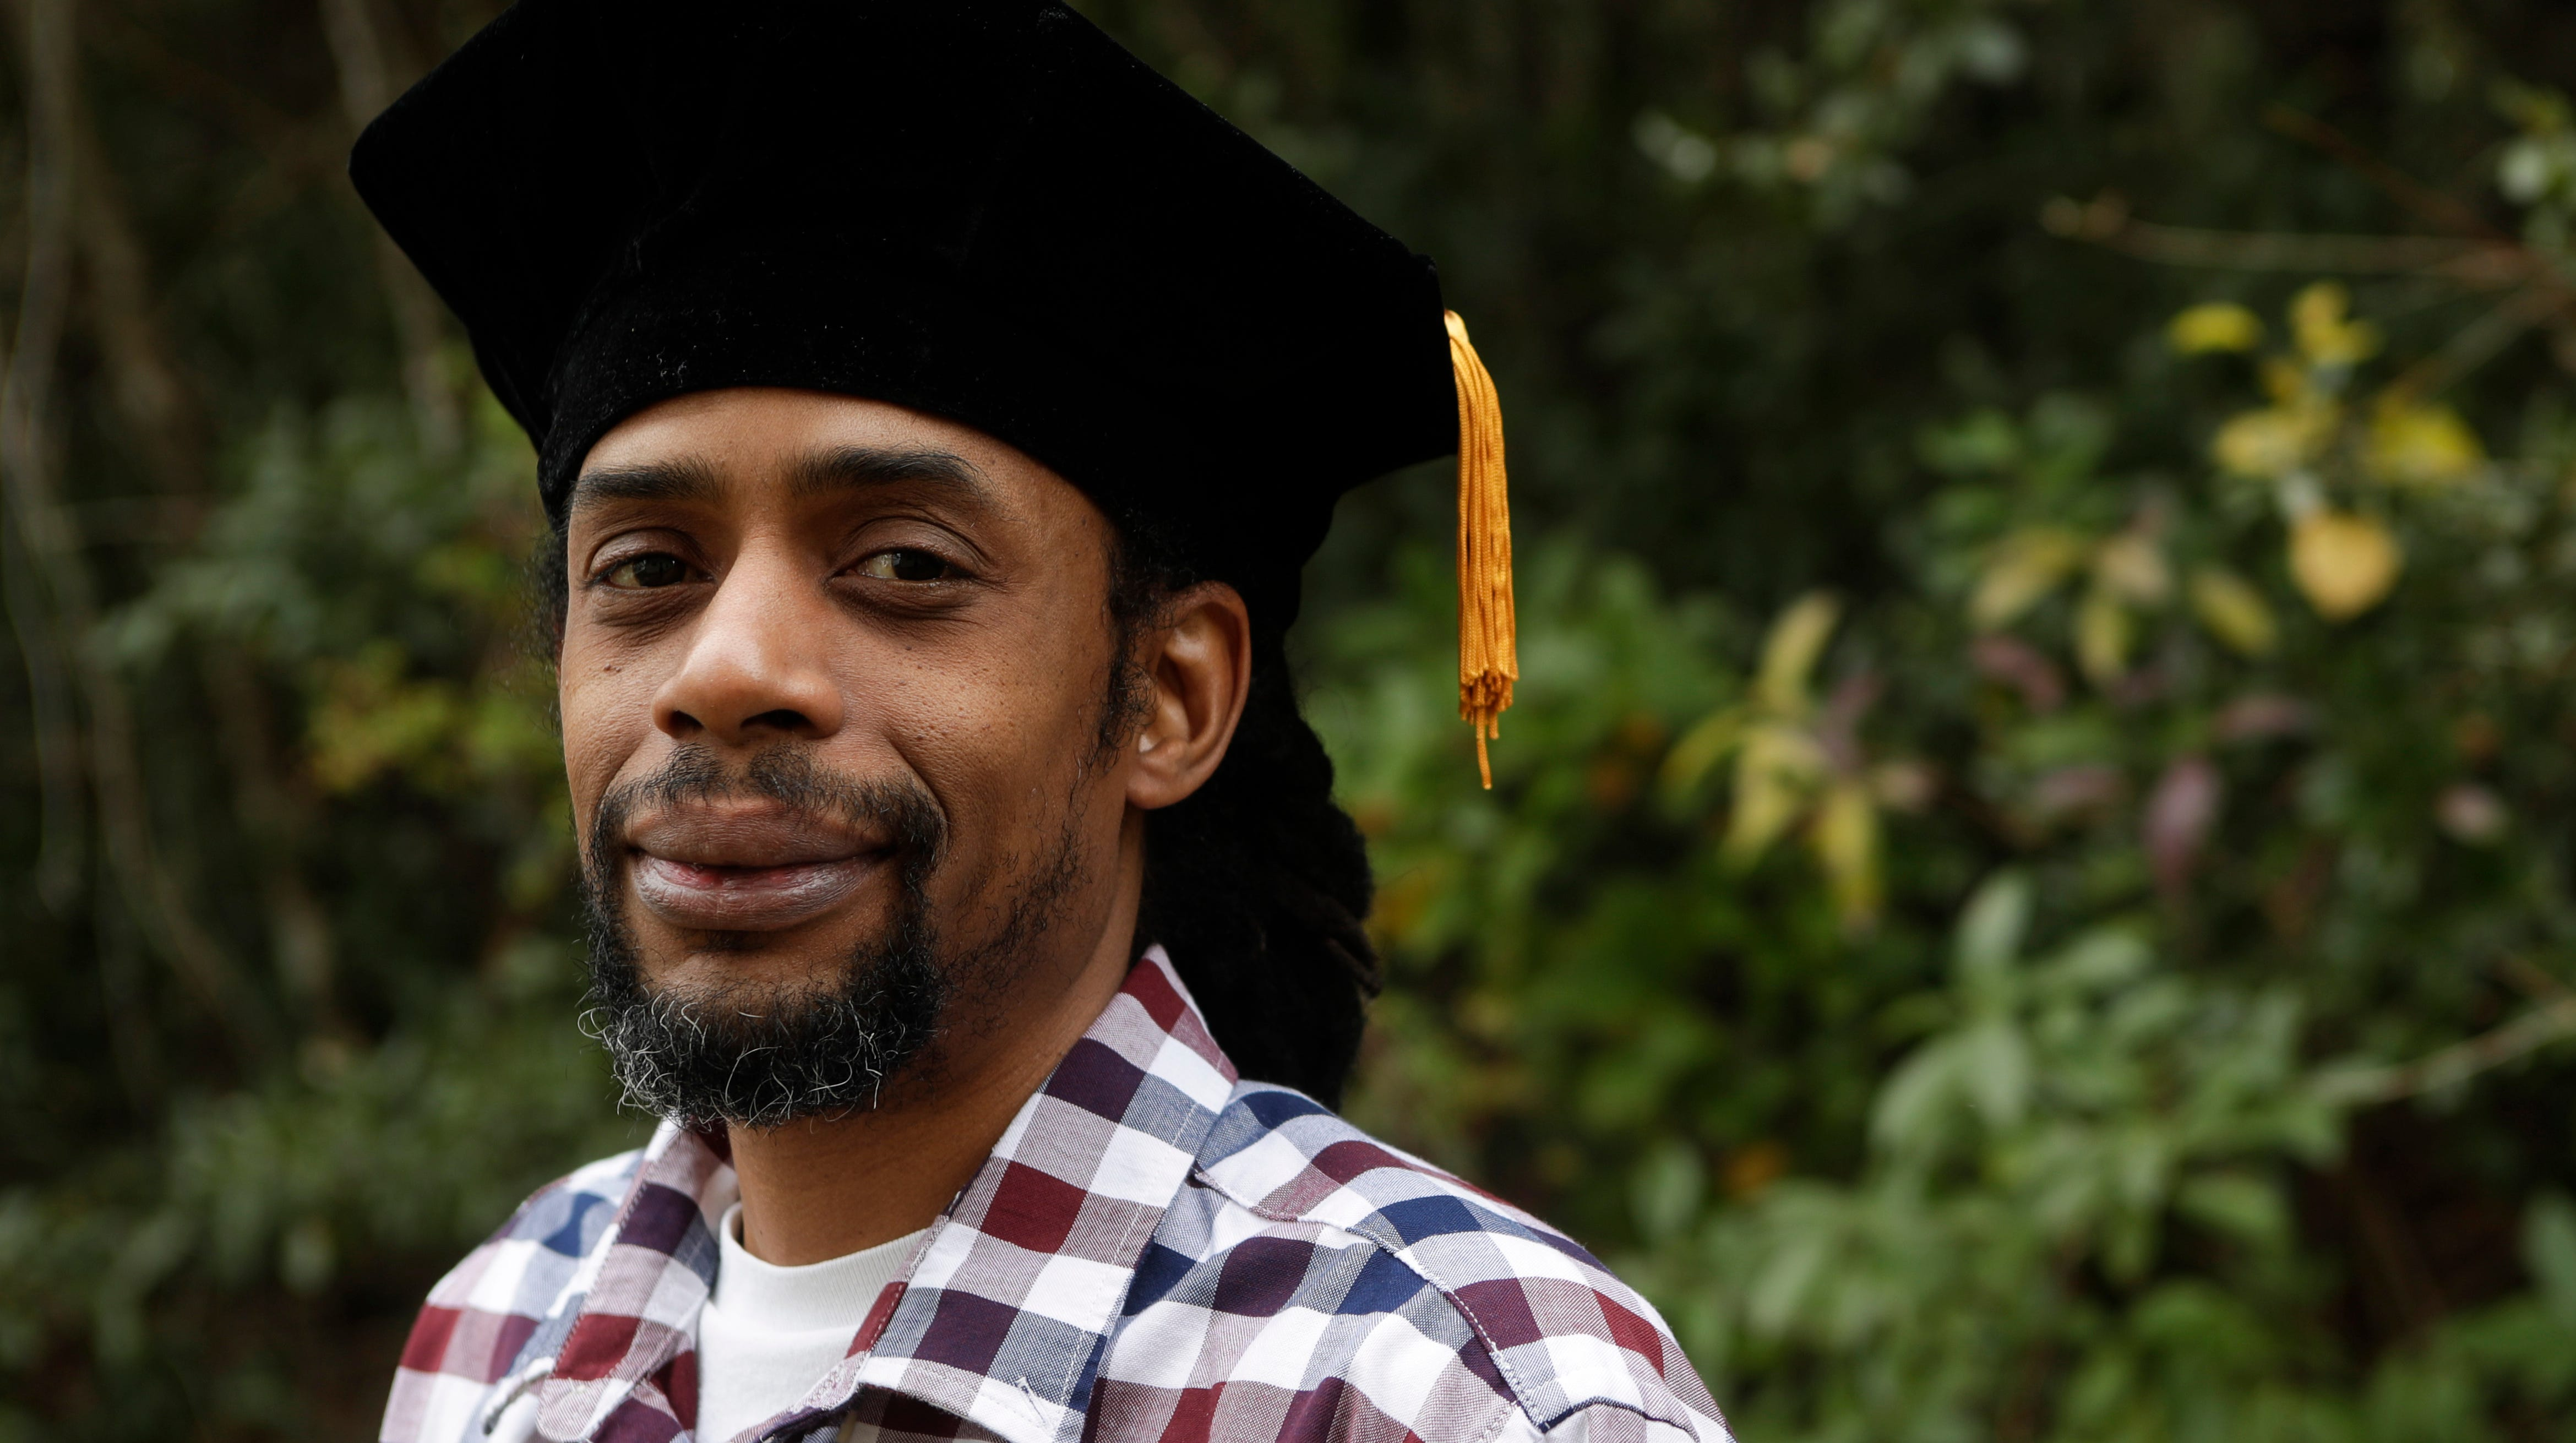 'I never thought I would make it': One FSU grad's journey from rock bottom to Ph.D.